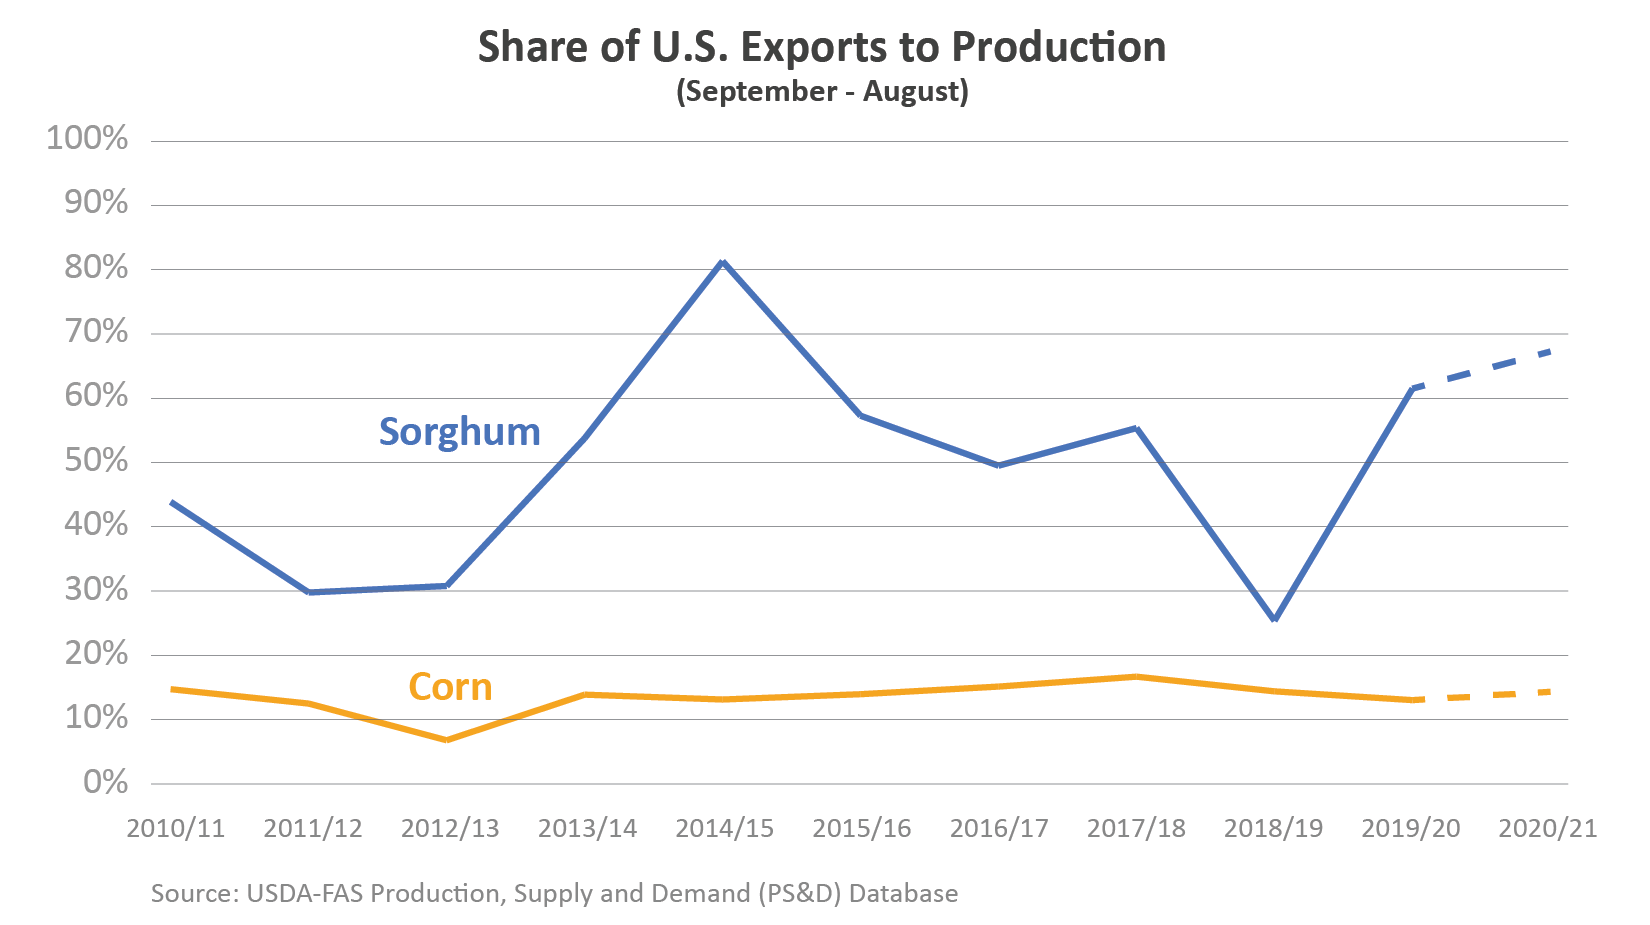 Line graph showing the share of U.S. corn and sorghum exports which go to production. In MY 2020/21, nearly 70% of sorghum is forecasted for production while nearly 15% of corn is.